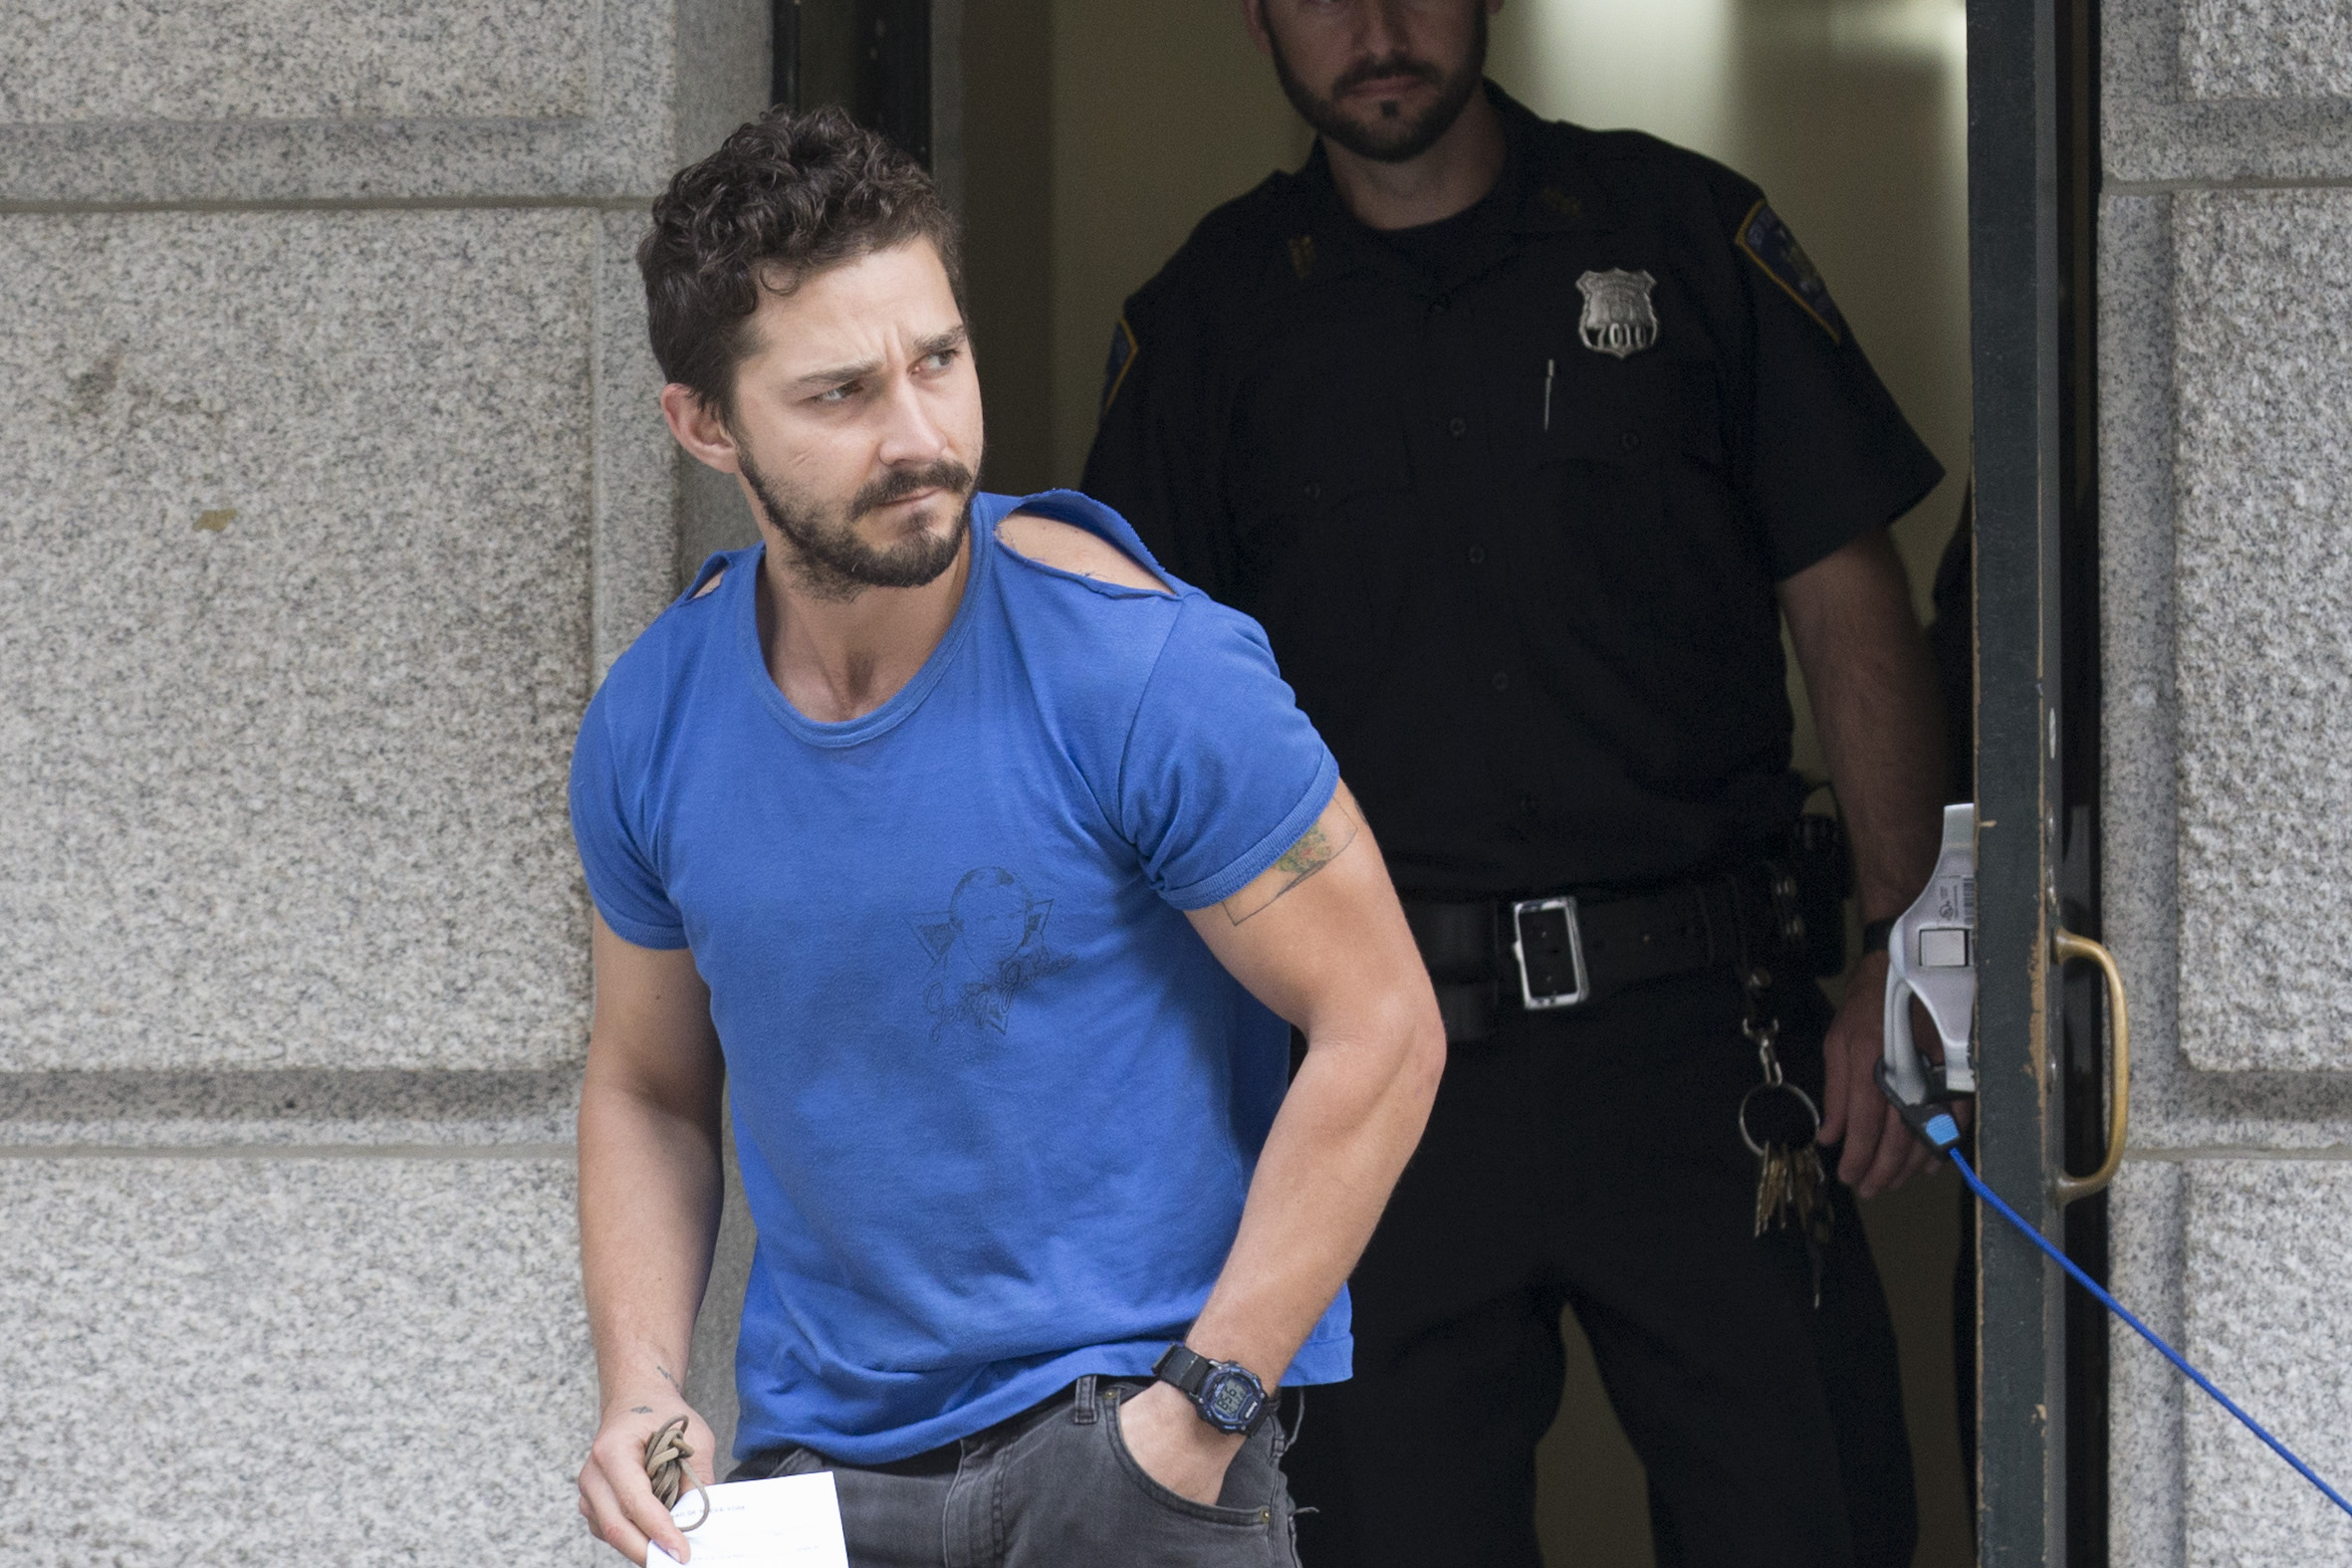 Shia LaBeouf removed from Broadway theater after disorderly conduct, police say